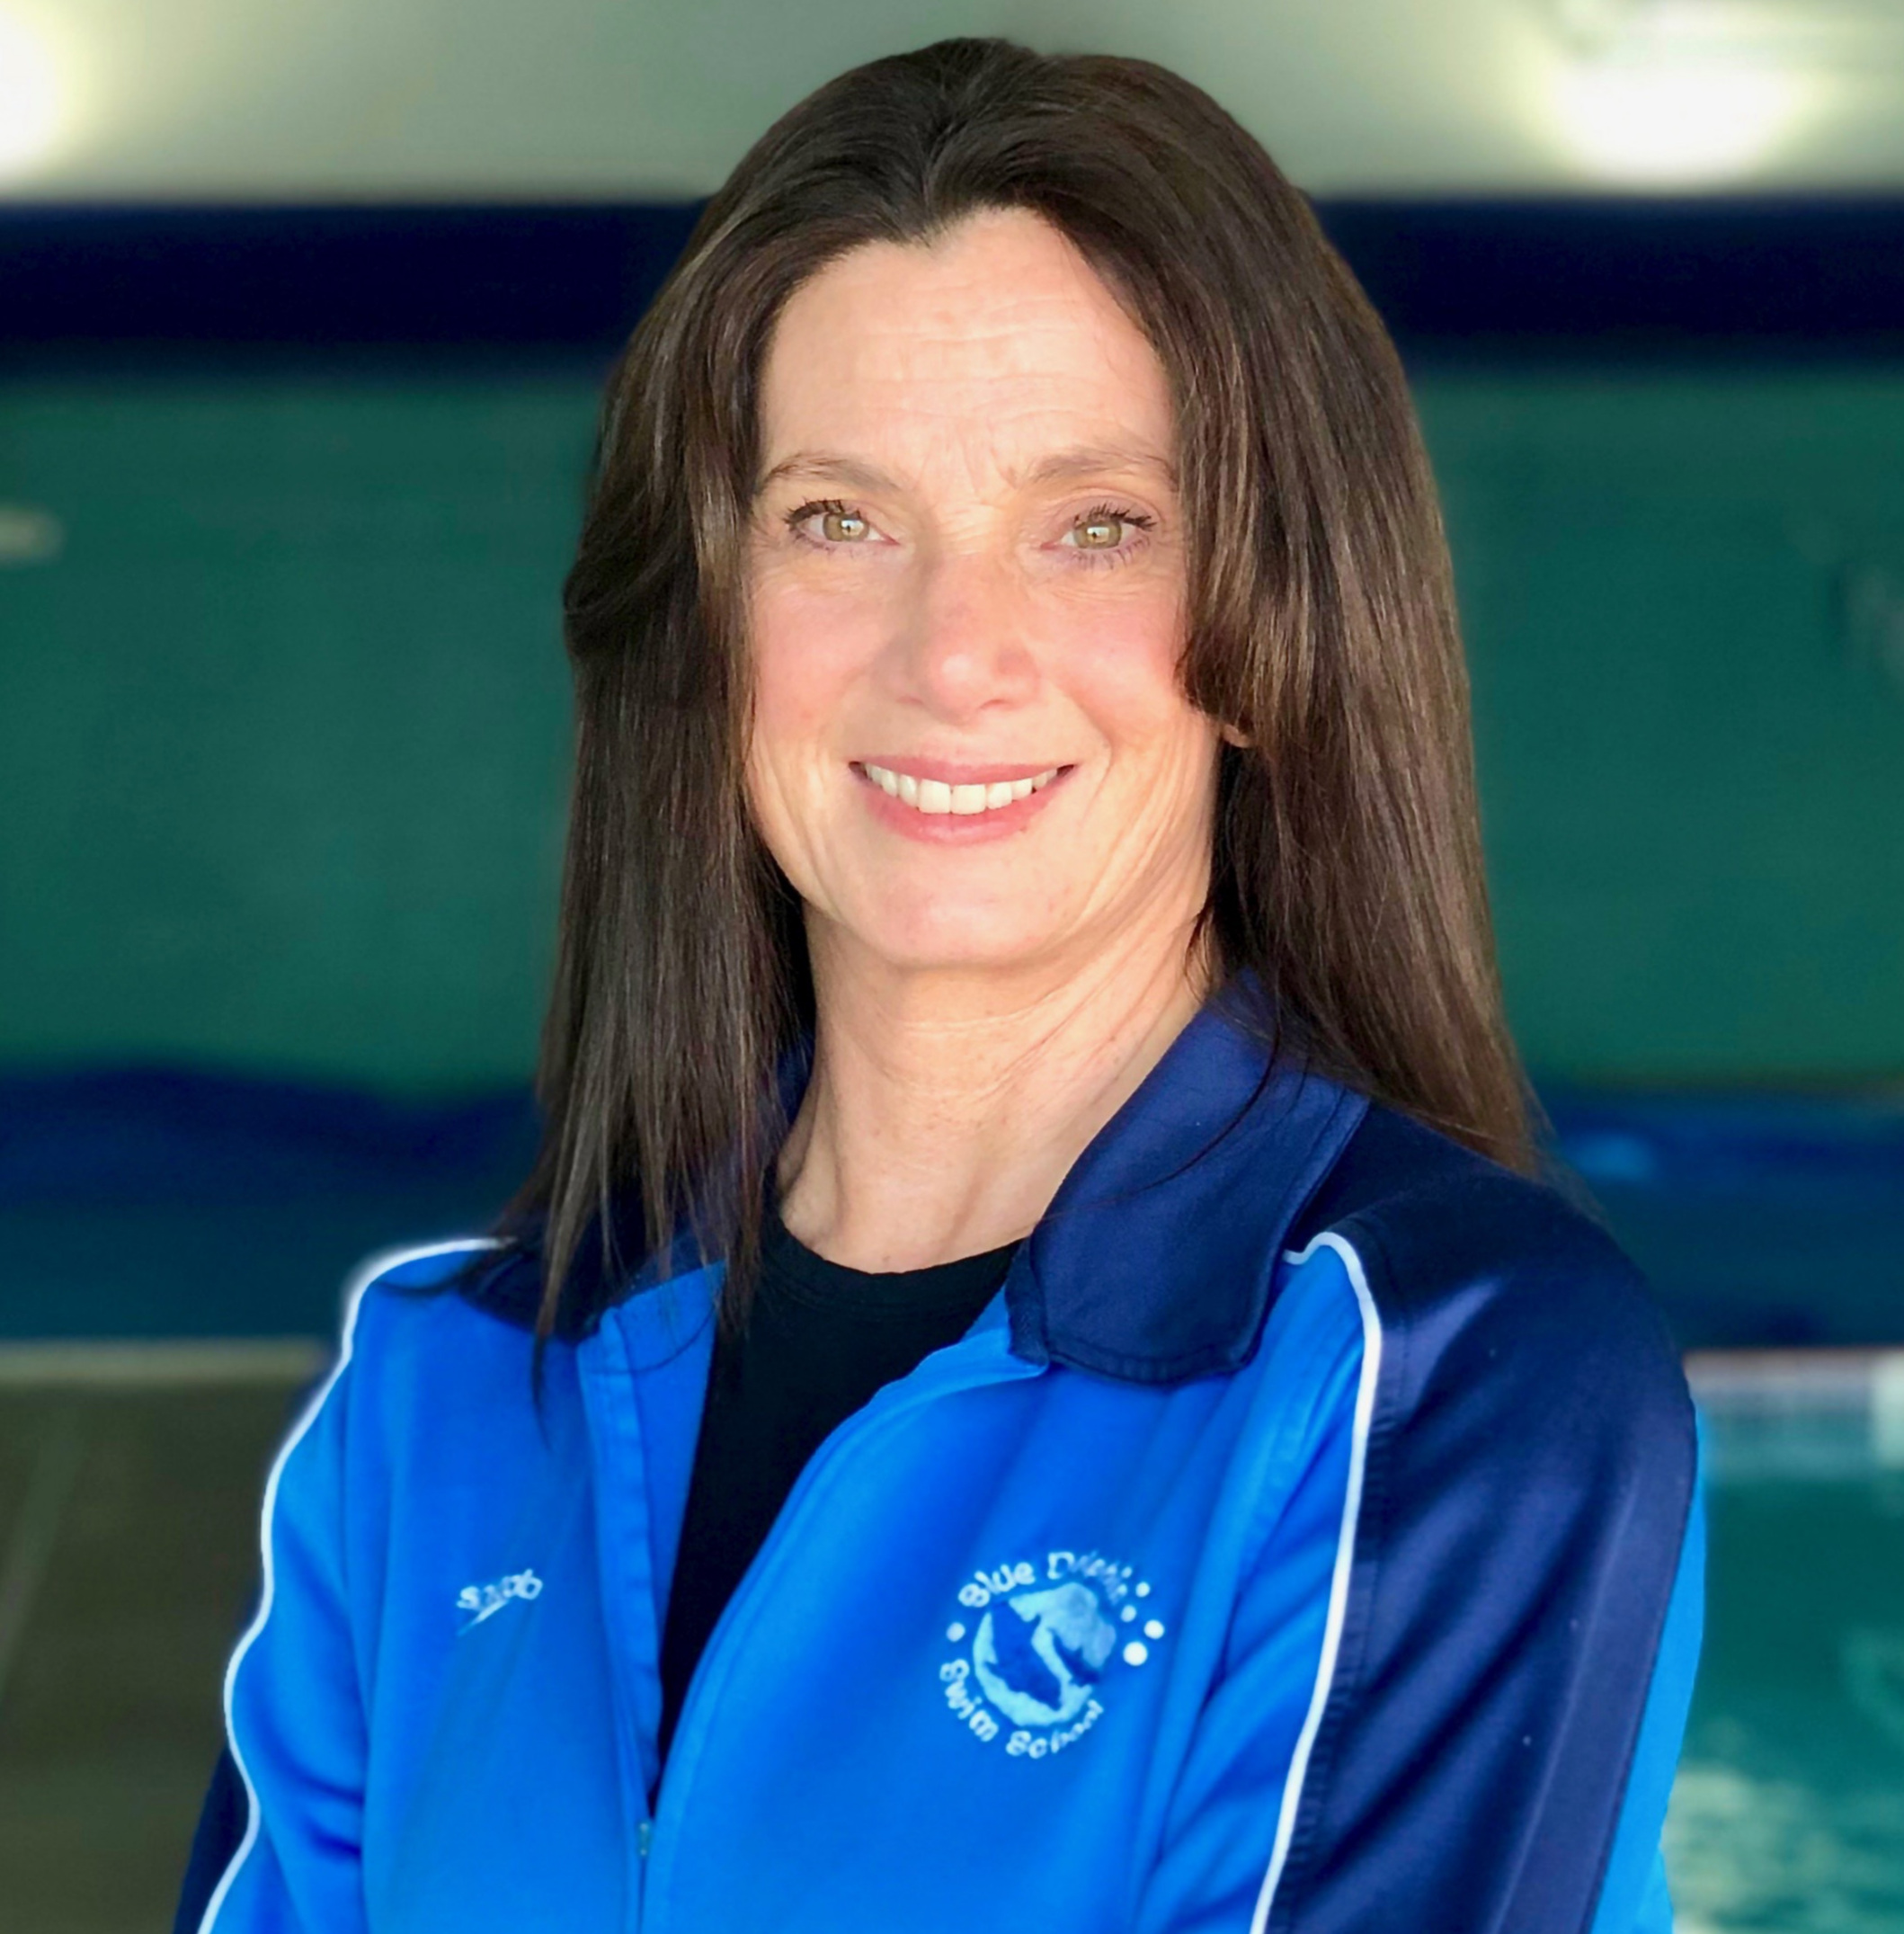 MISS STACY - Miss Stacy is the owner of Blue Dolphin Swim School. She Grew up in Eureka, California and swam competitively for 5 years at the USA Swimming Level as well as trained with Olympic coach Sherm Chavoor. Stacy Has has been teaching swimming since she attended college at San Diego State University. In addition, Ms. Stacy has coached high school teams, SDSU Triathlon Club, and Swim Masters.